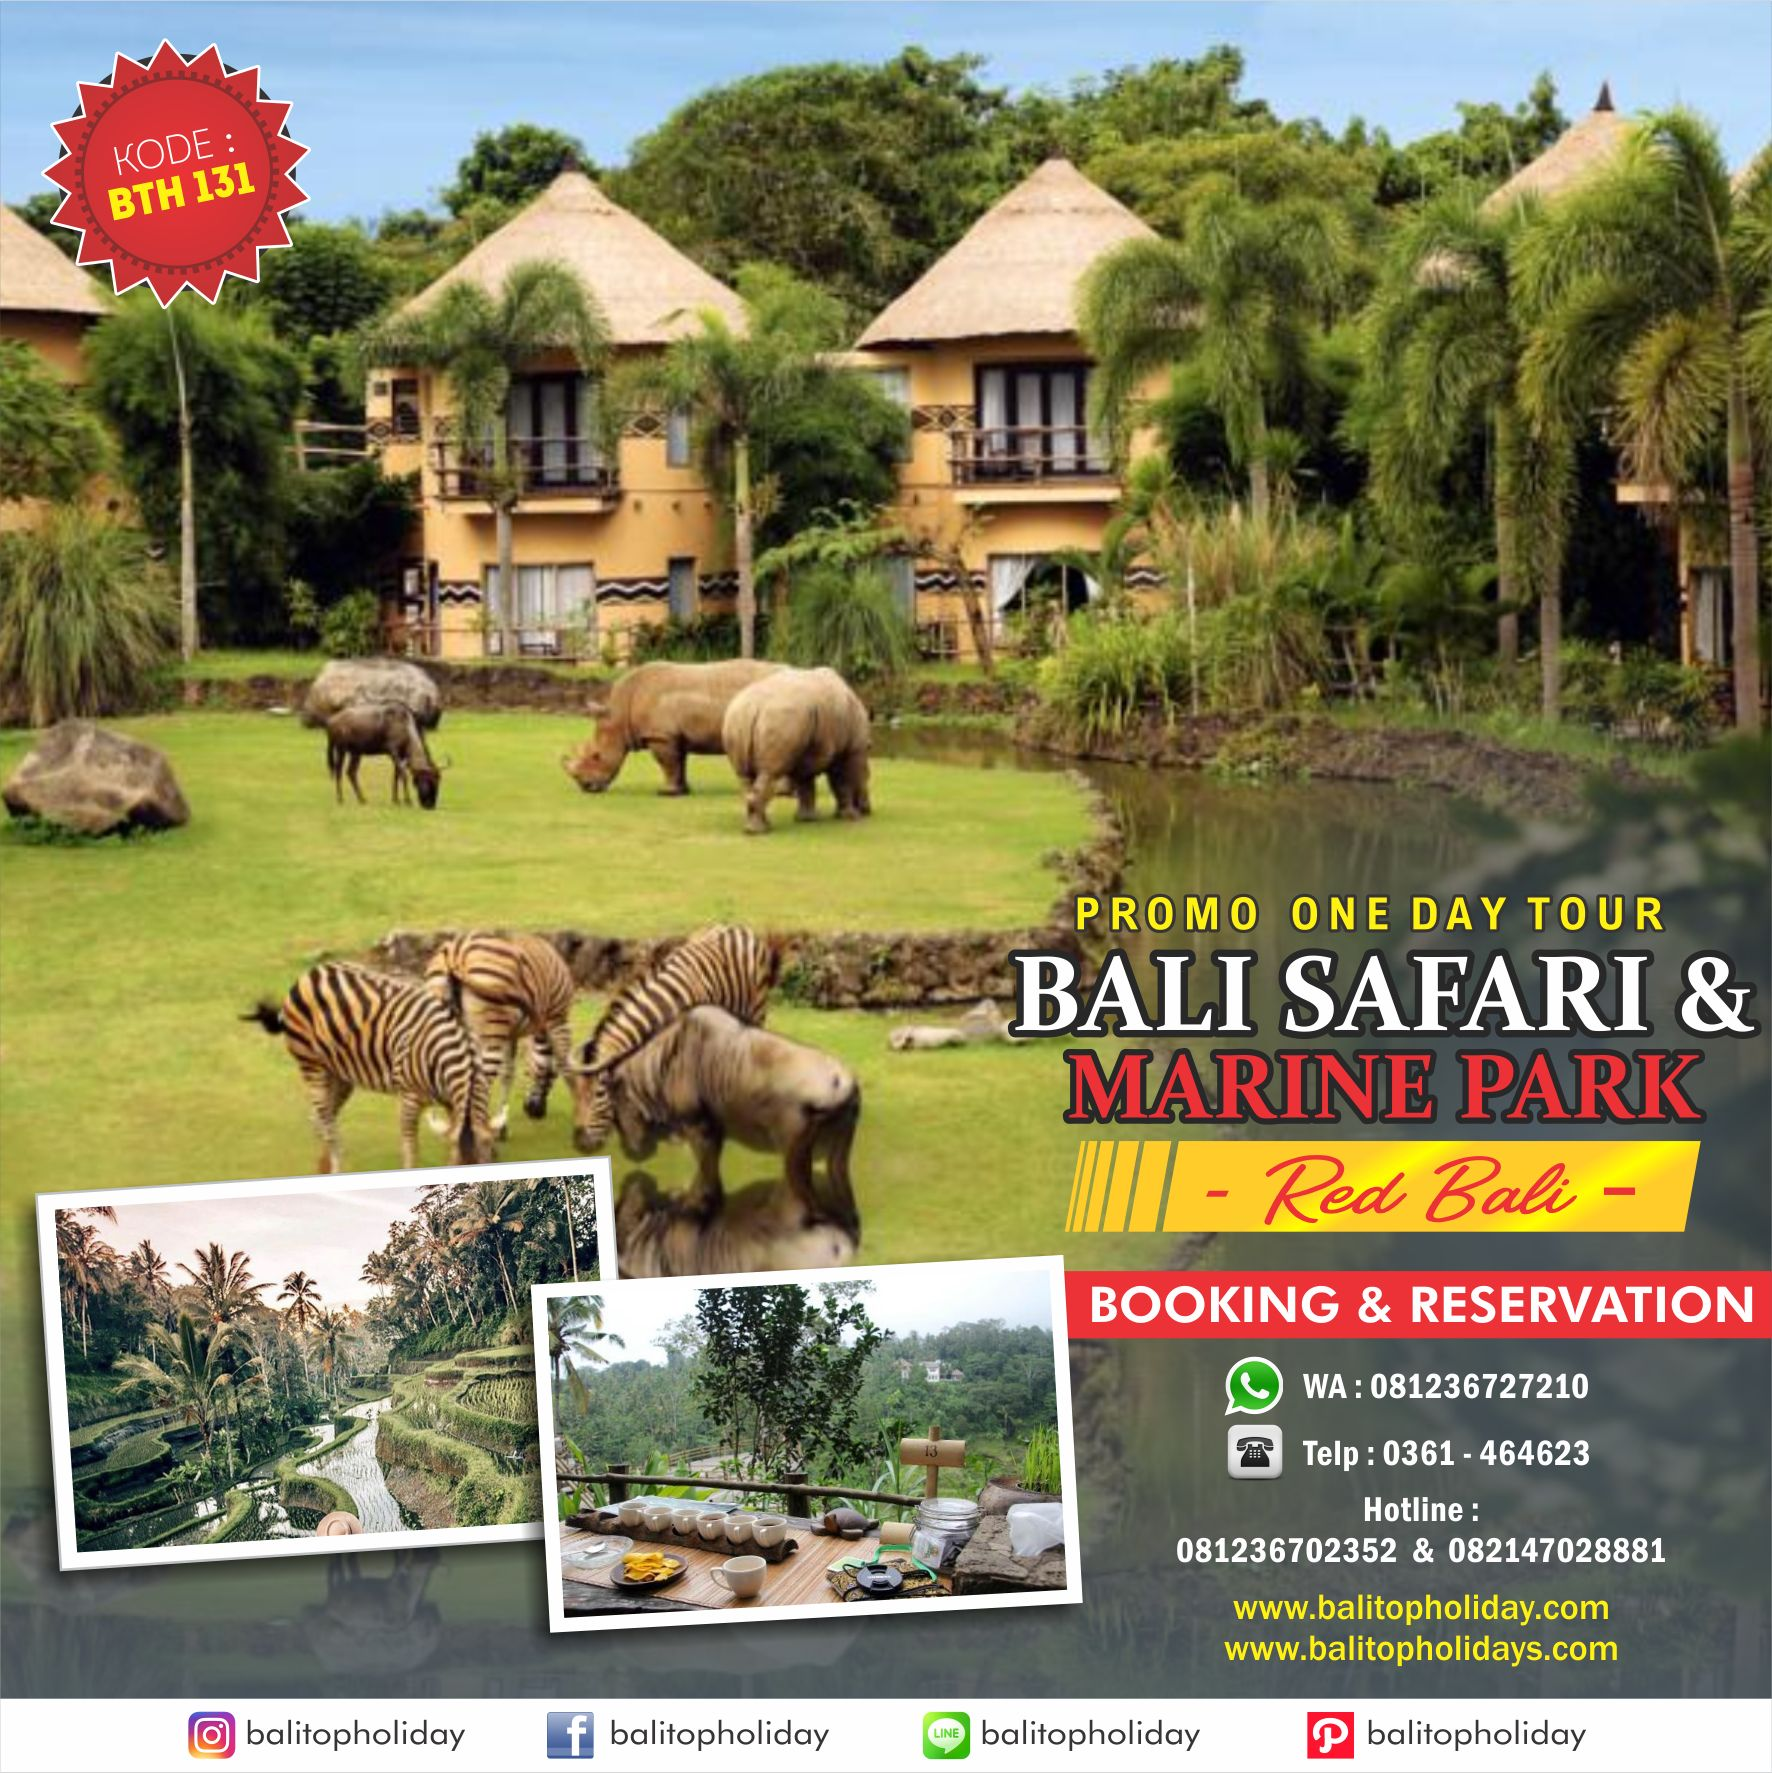 BALI SAFARI ONE DAY TOUR